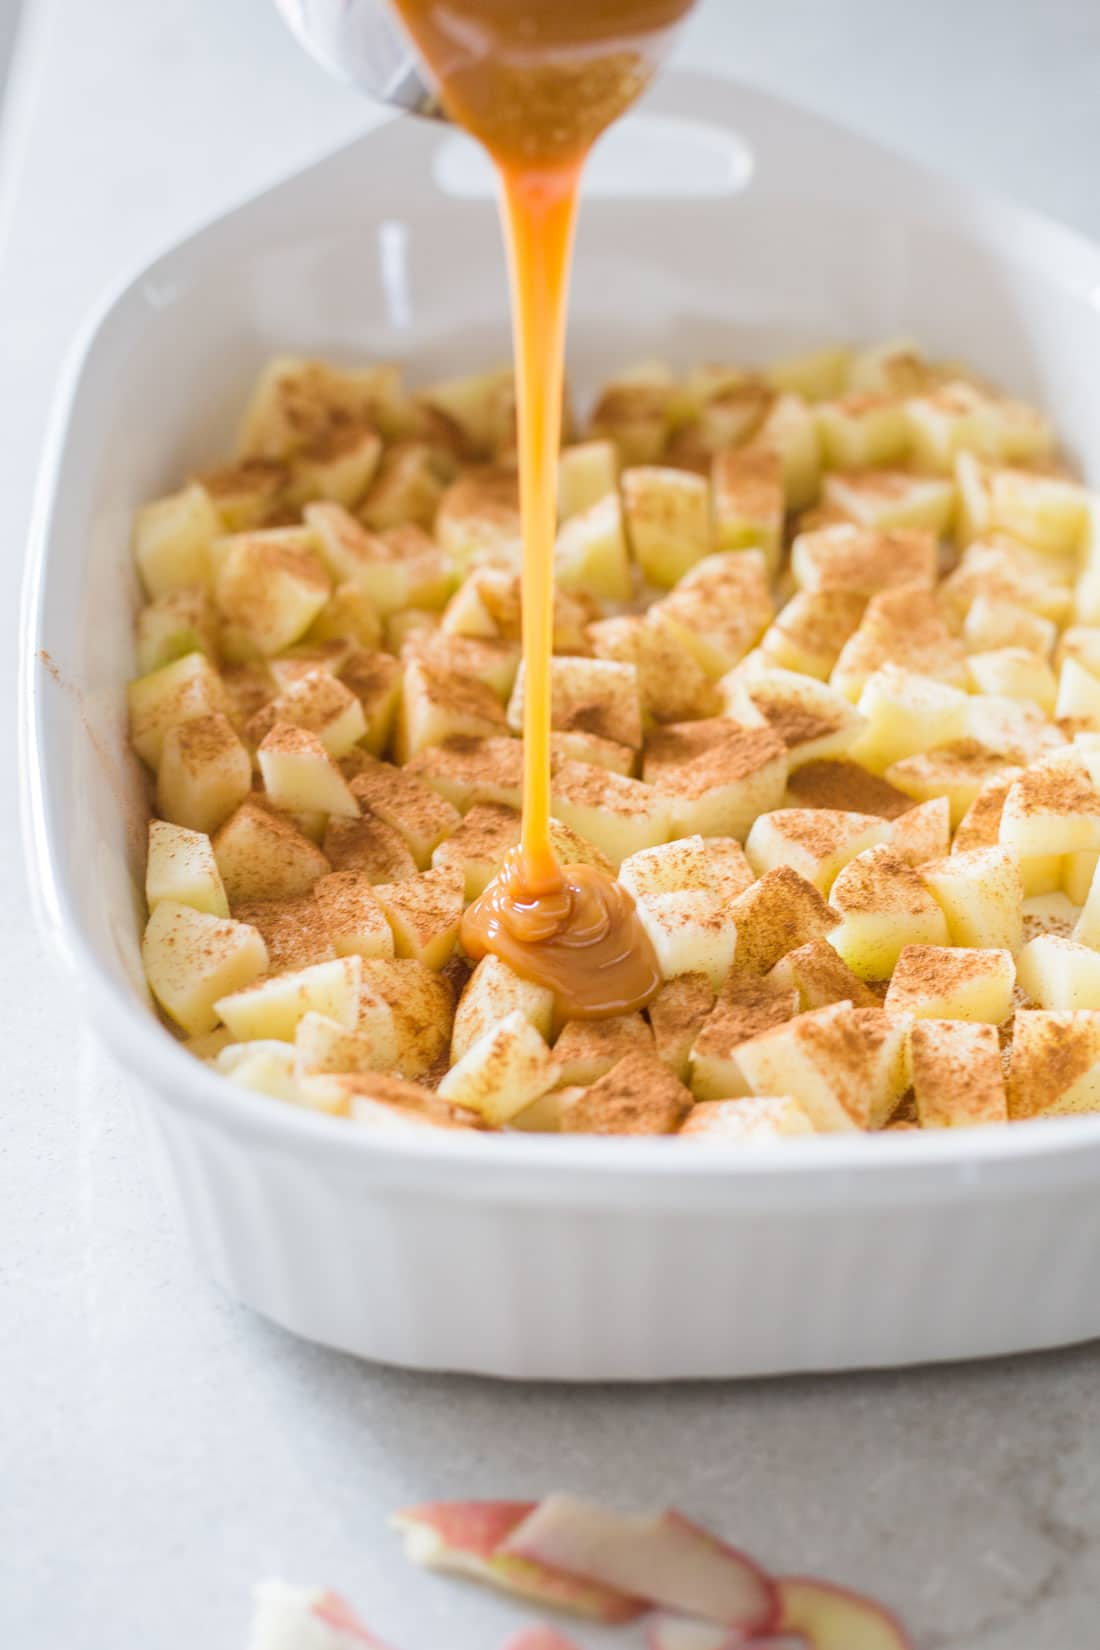 Miss Jones Caramel Apple Pie Dump Cake with caramel drizzled on top of the apples